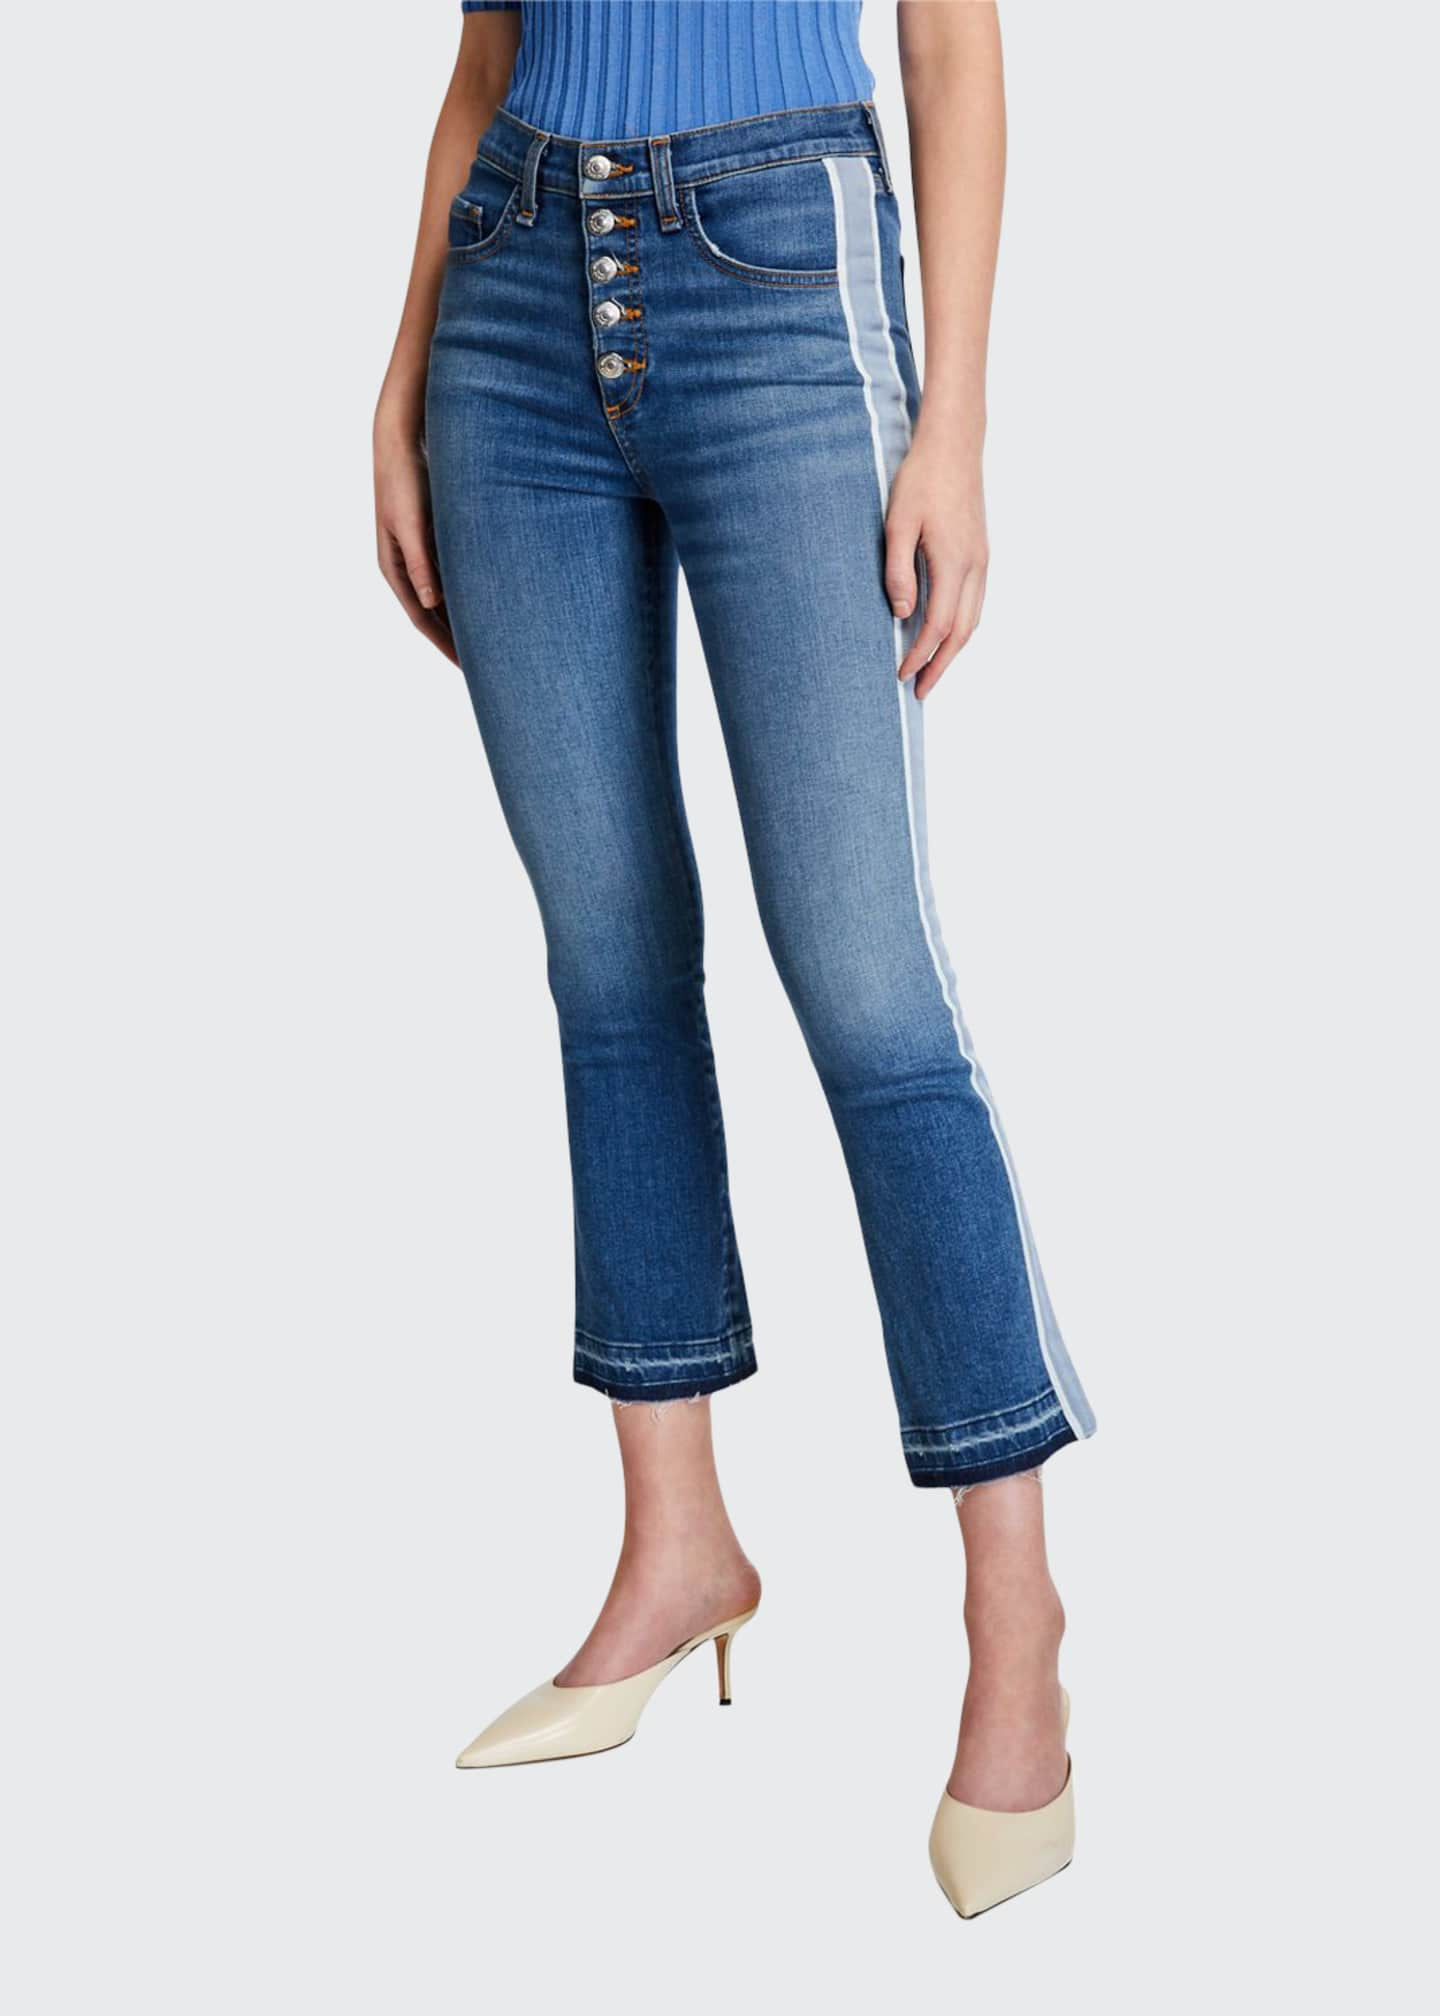 Veronica Beard Carolyn Baby Boot Cropped Jeans with